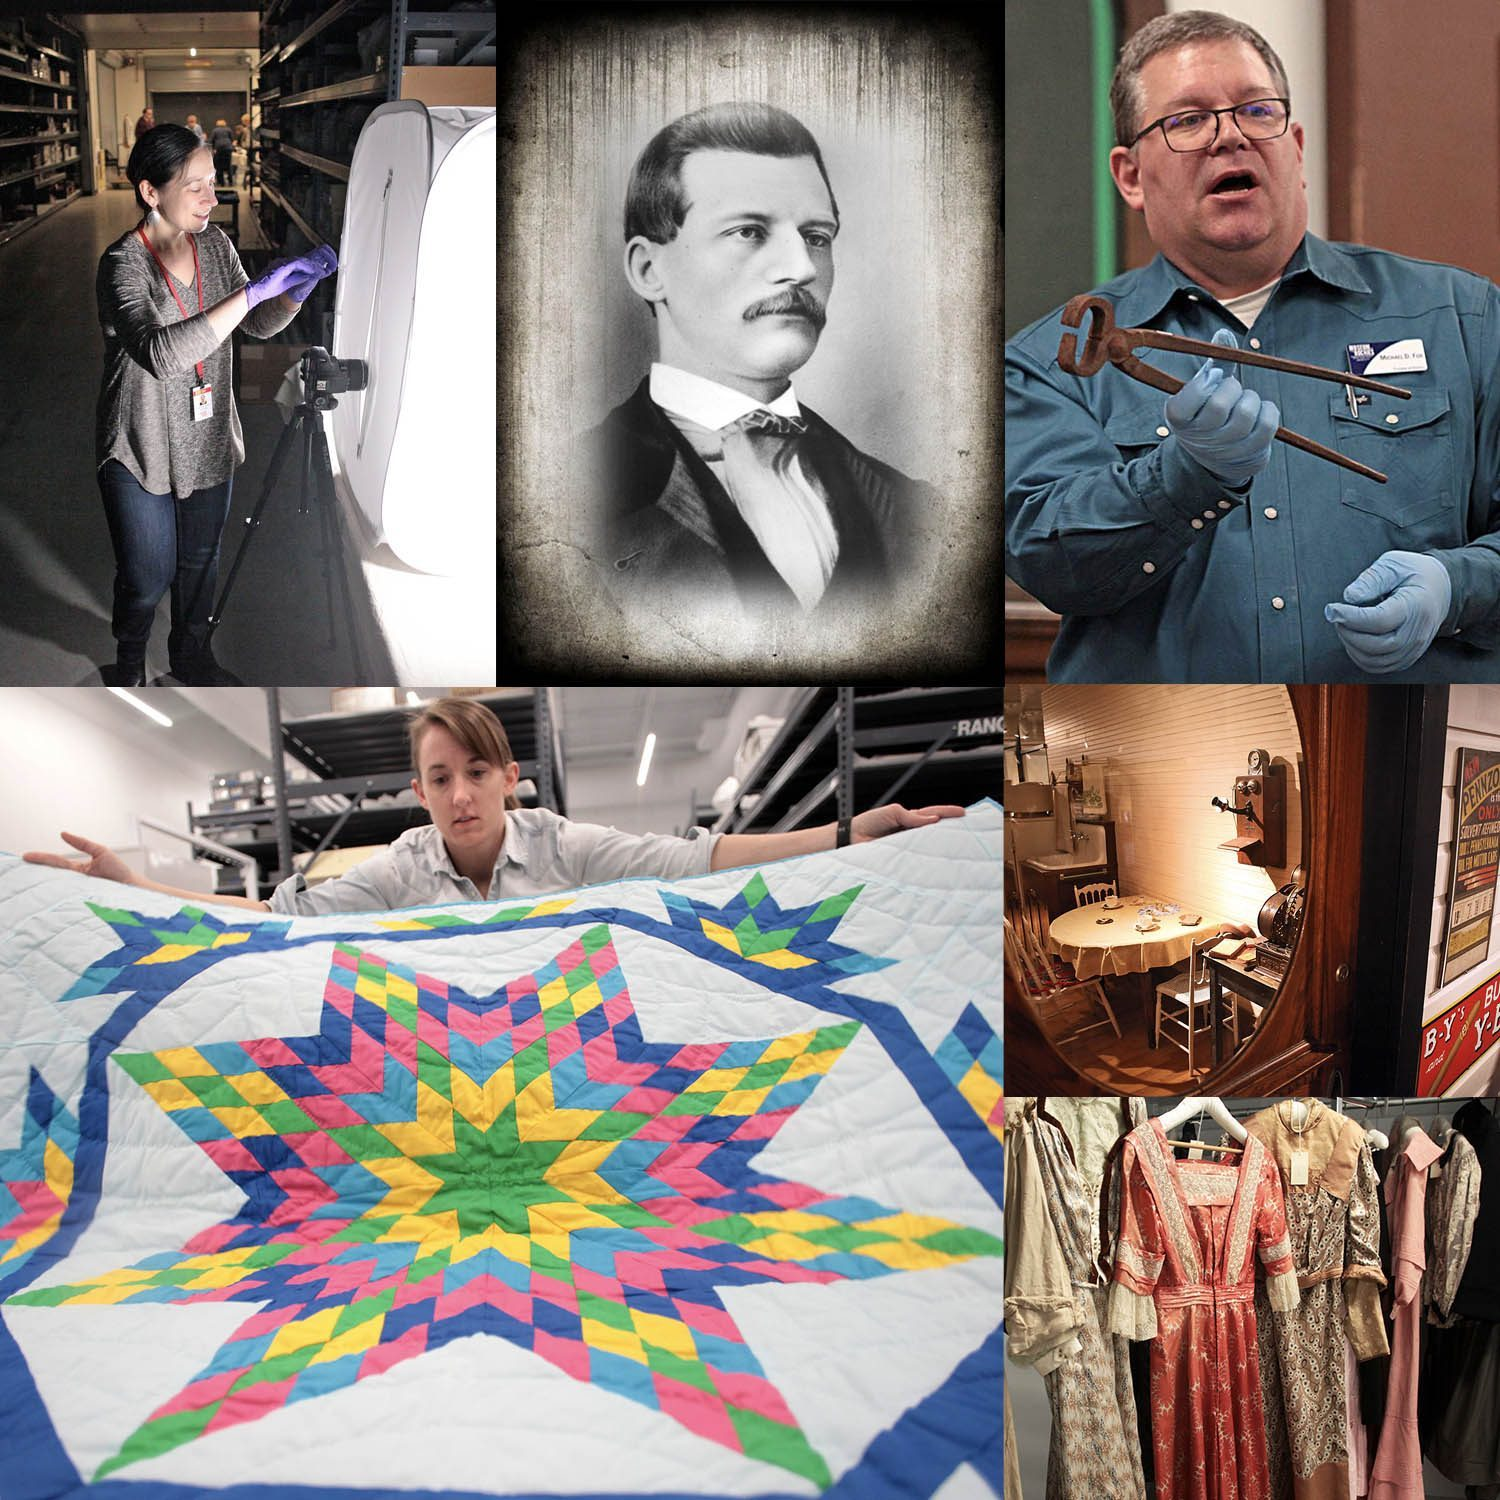 A collage of history department staff giving presentations, a heritage quilt, 1930s house, and the museum's textile collection.